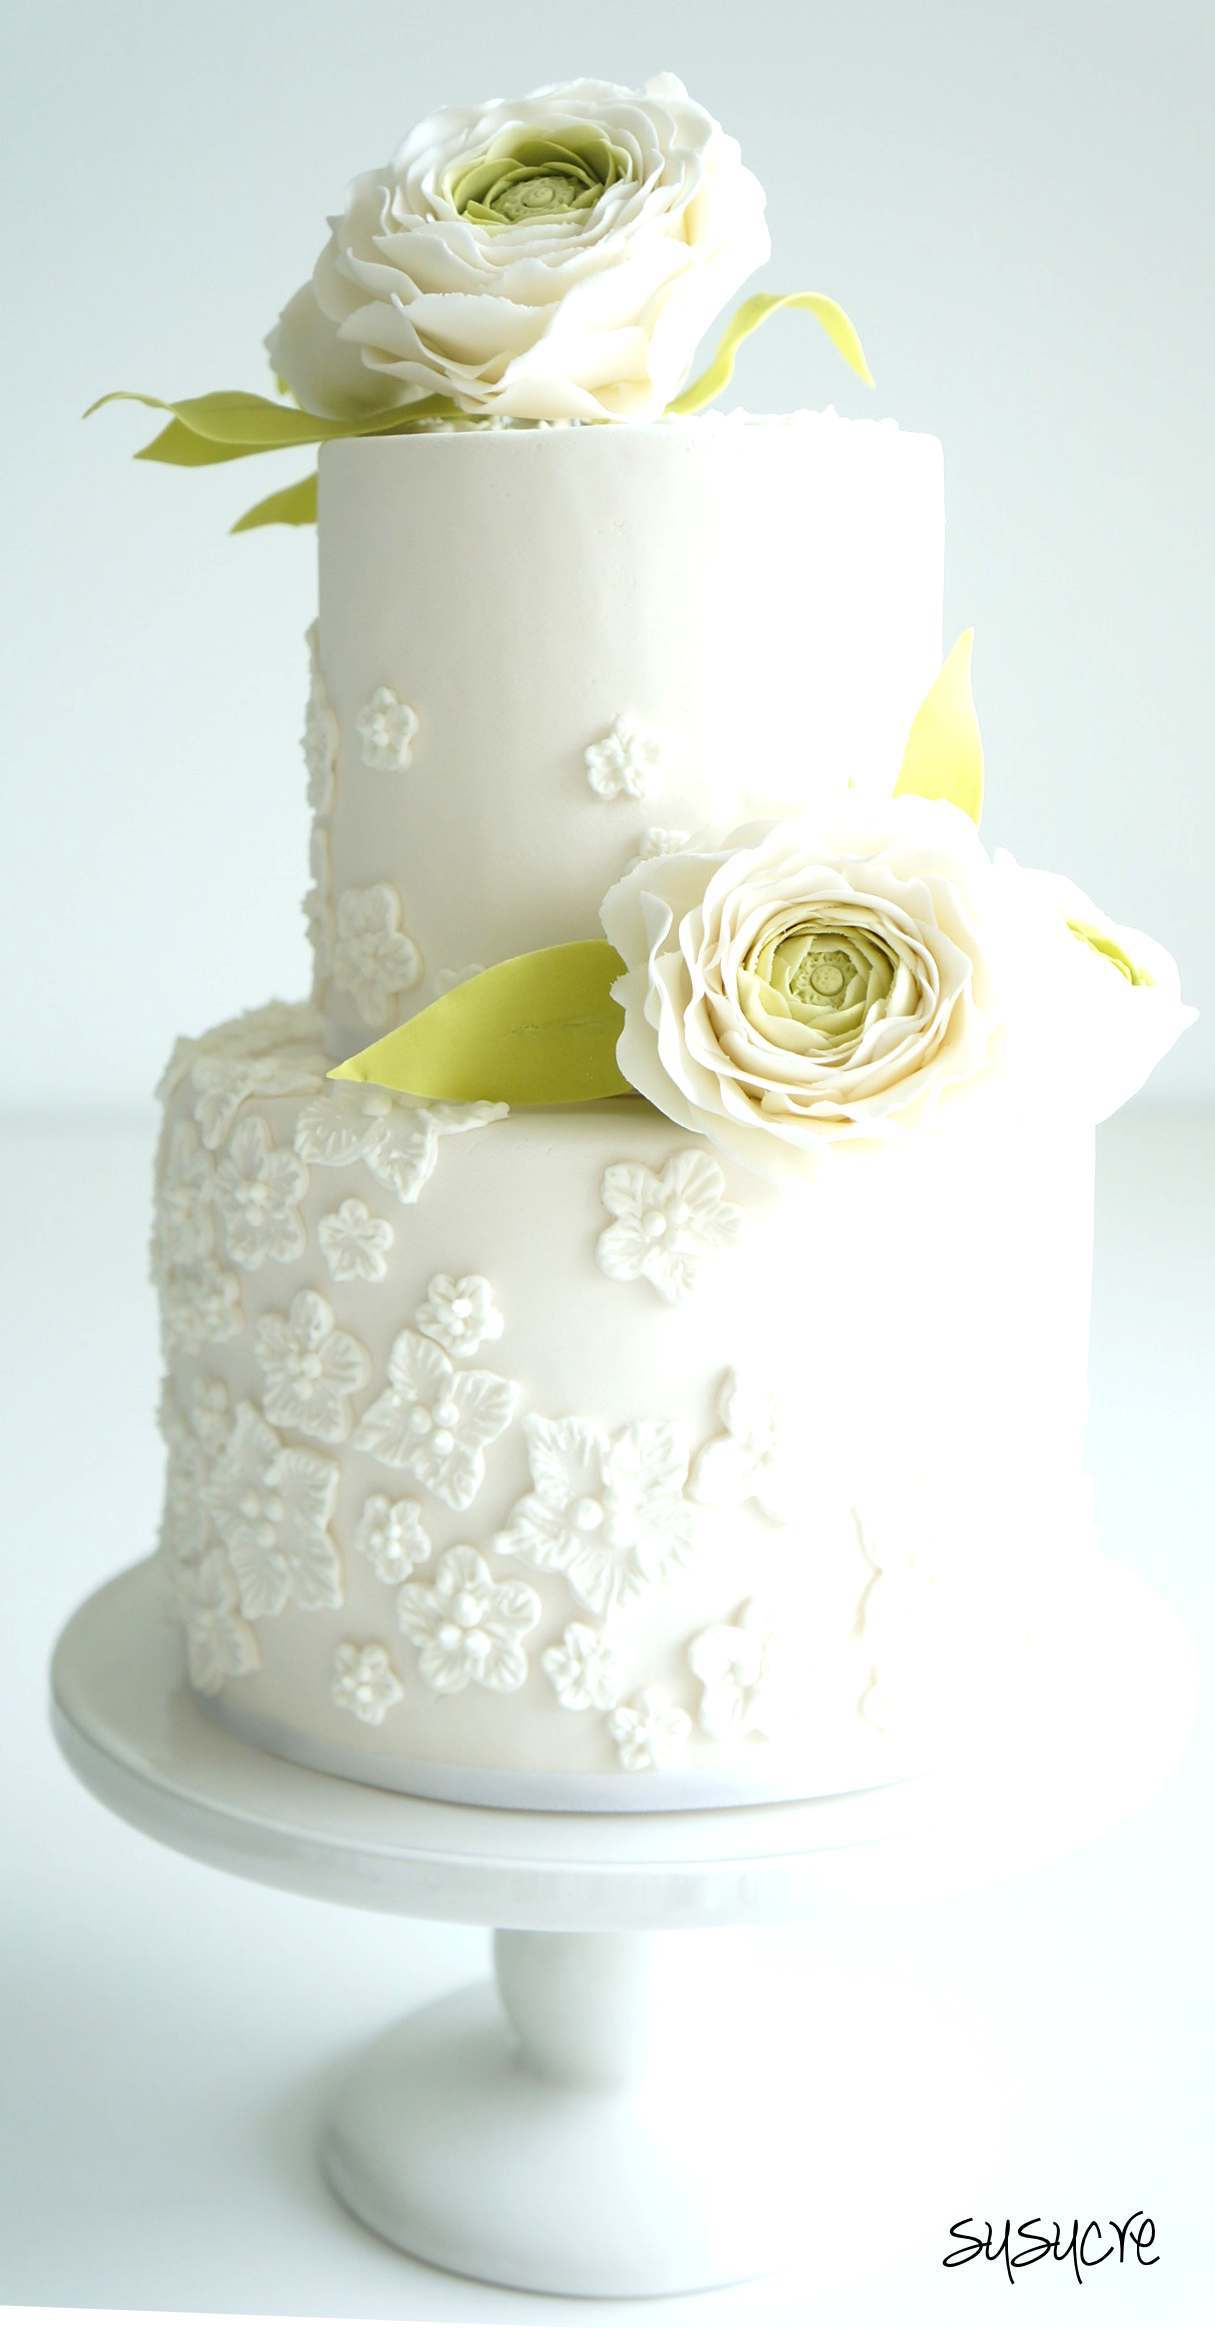 2 tier wedding cake singapore two tier wedding cakes by susucre pte ltd bridestory 10166